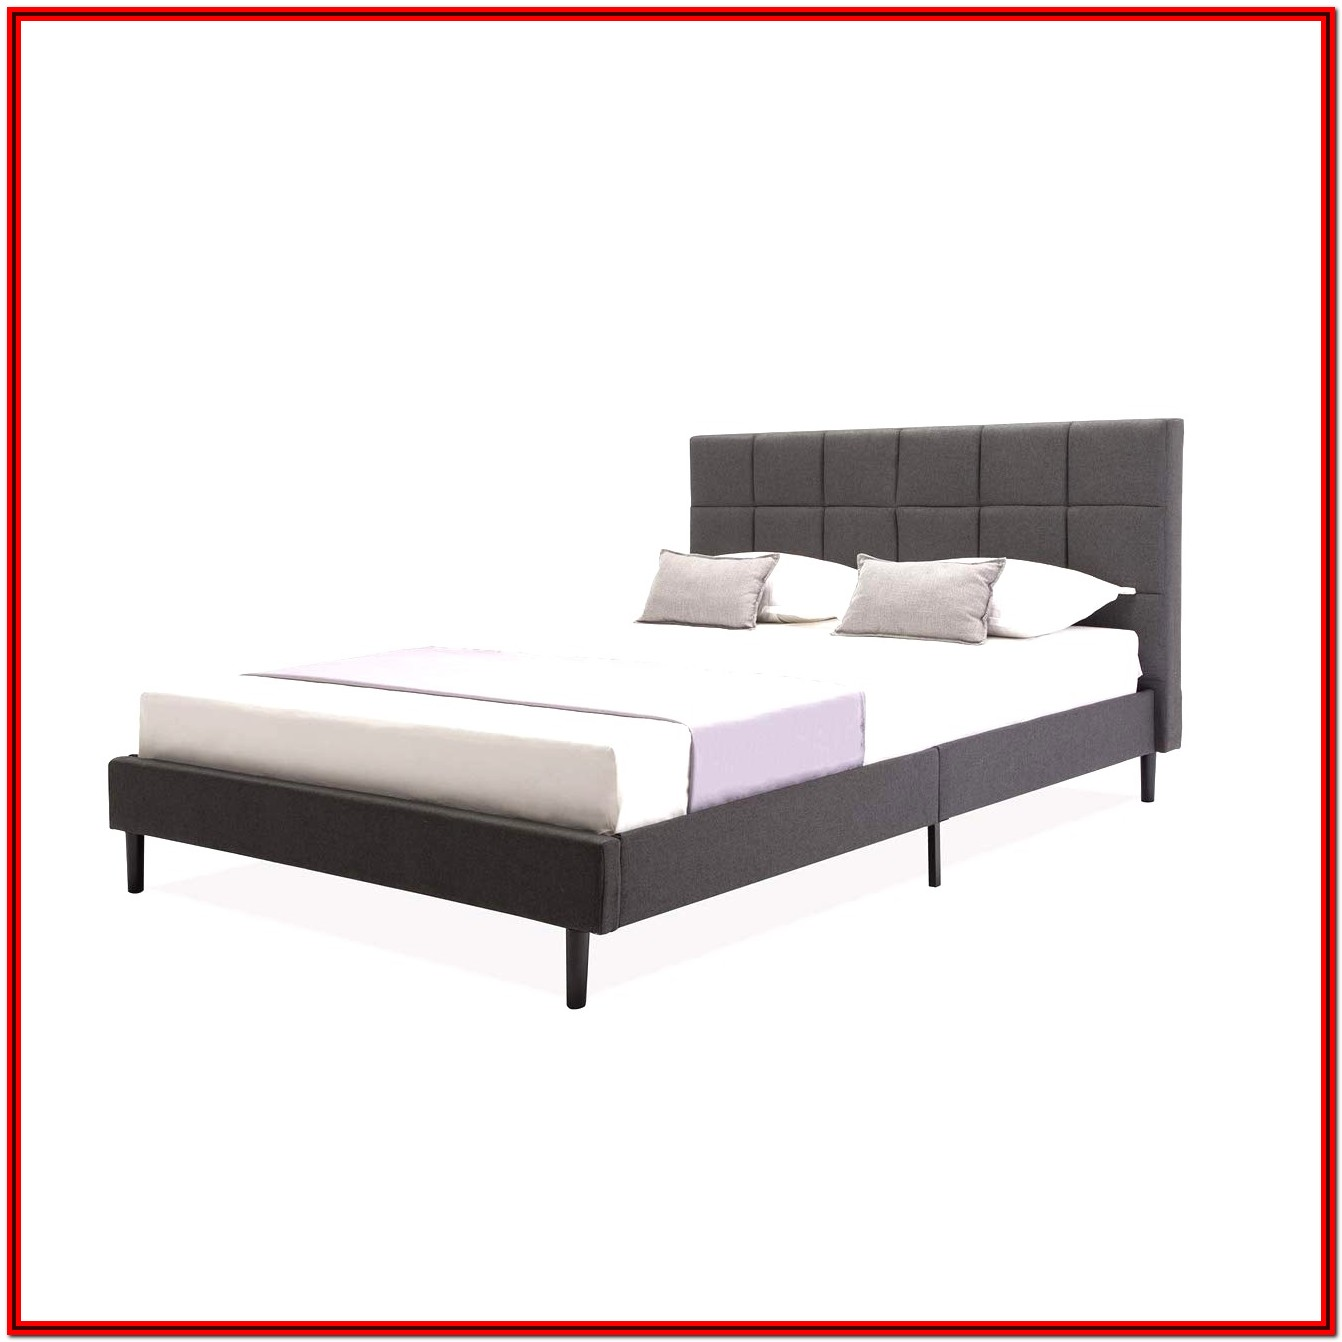 King Size Wooden Bed Frame Amazon